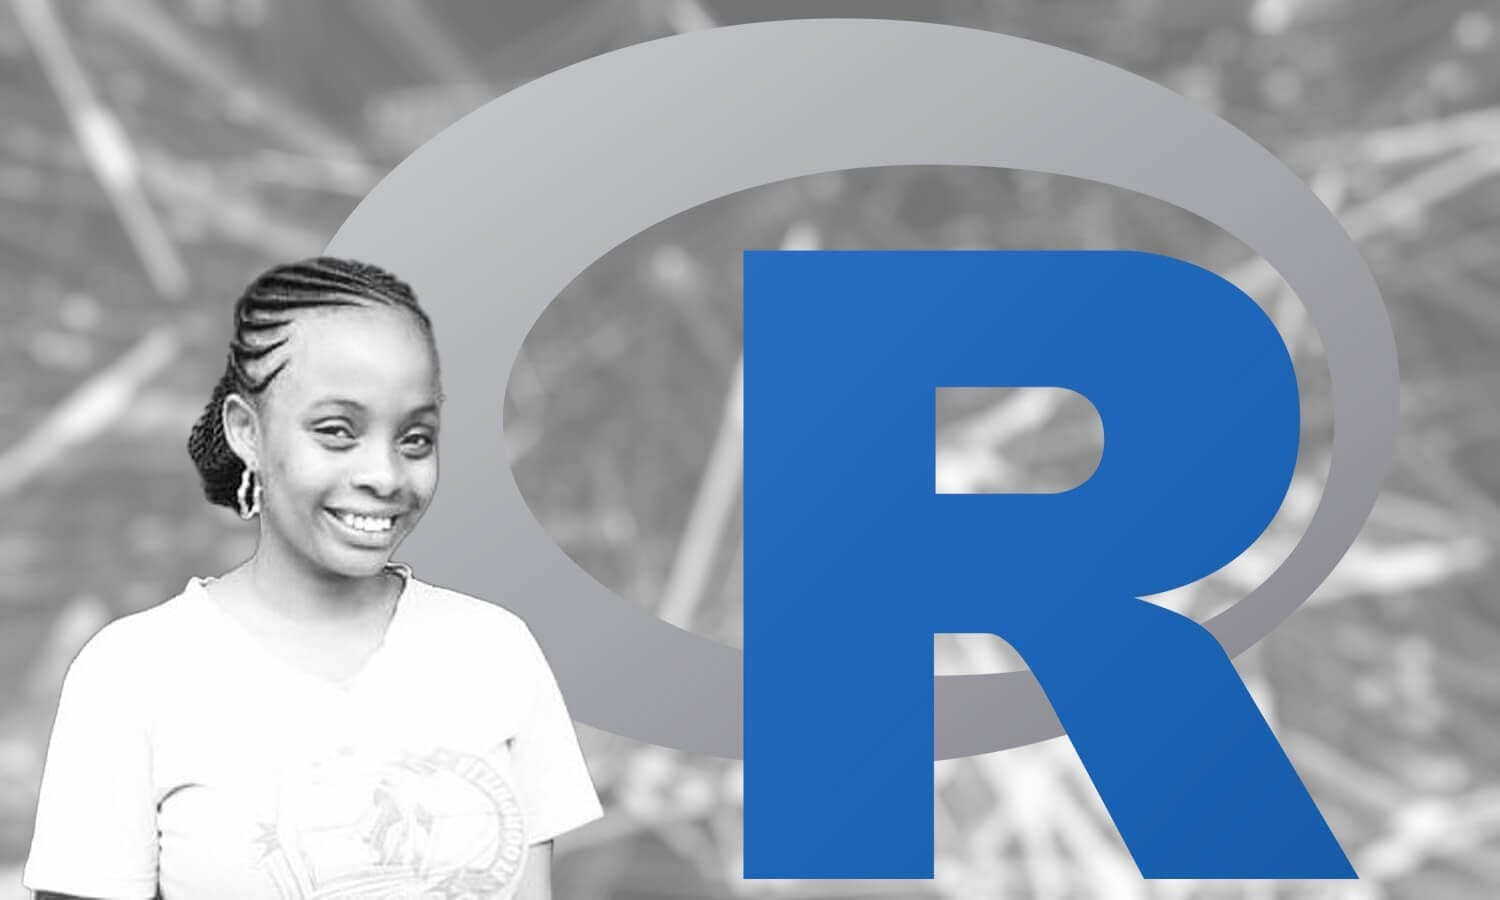 Top Tips for Learning R from Africa R's Shelmith Kariuki